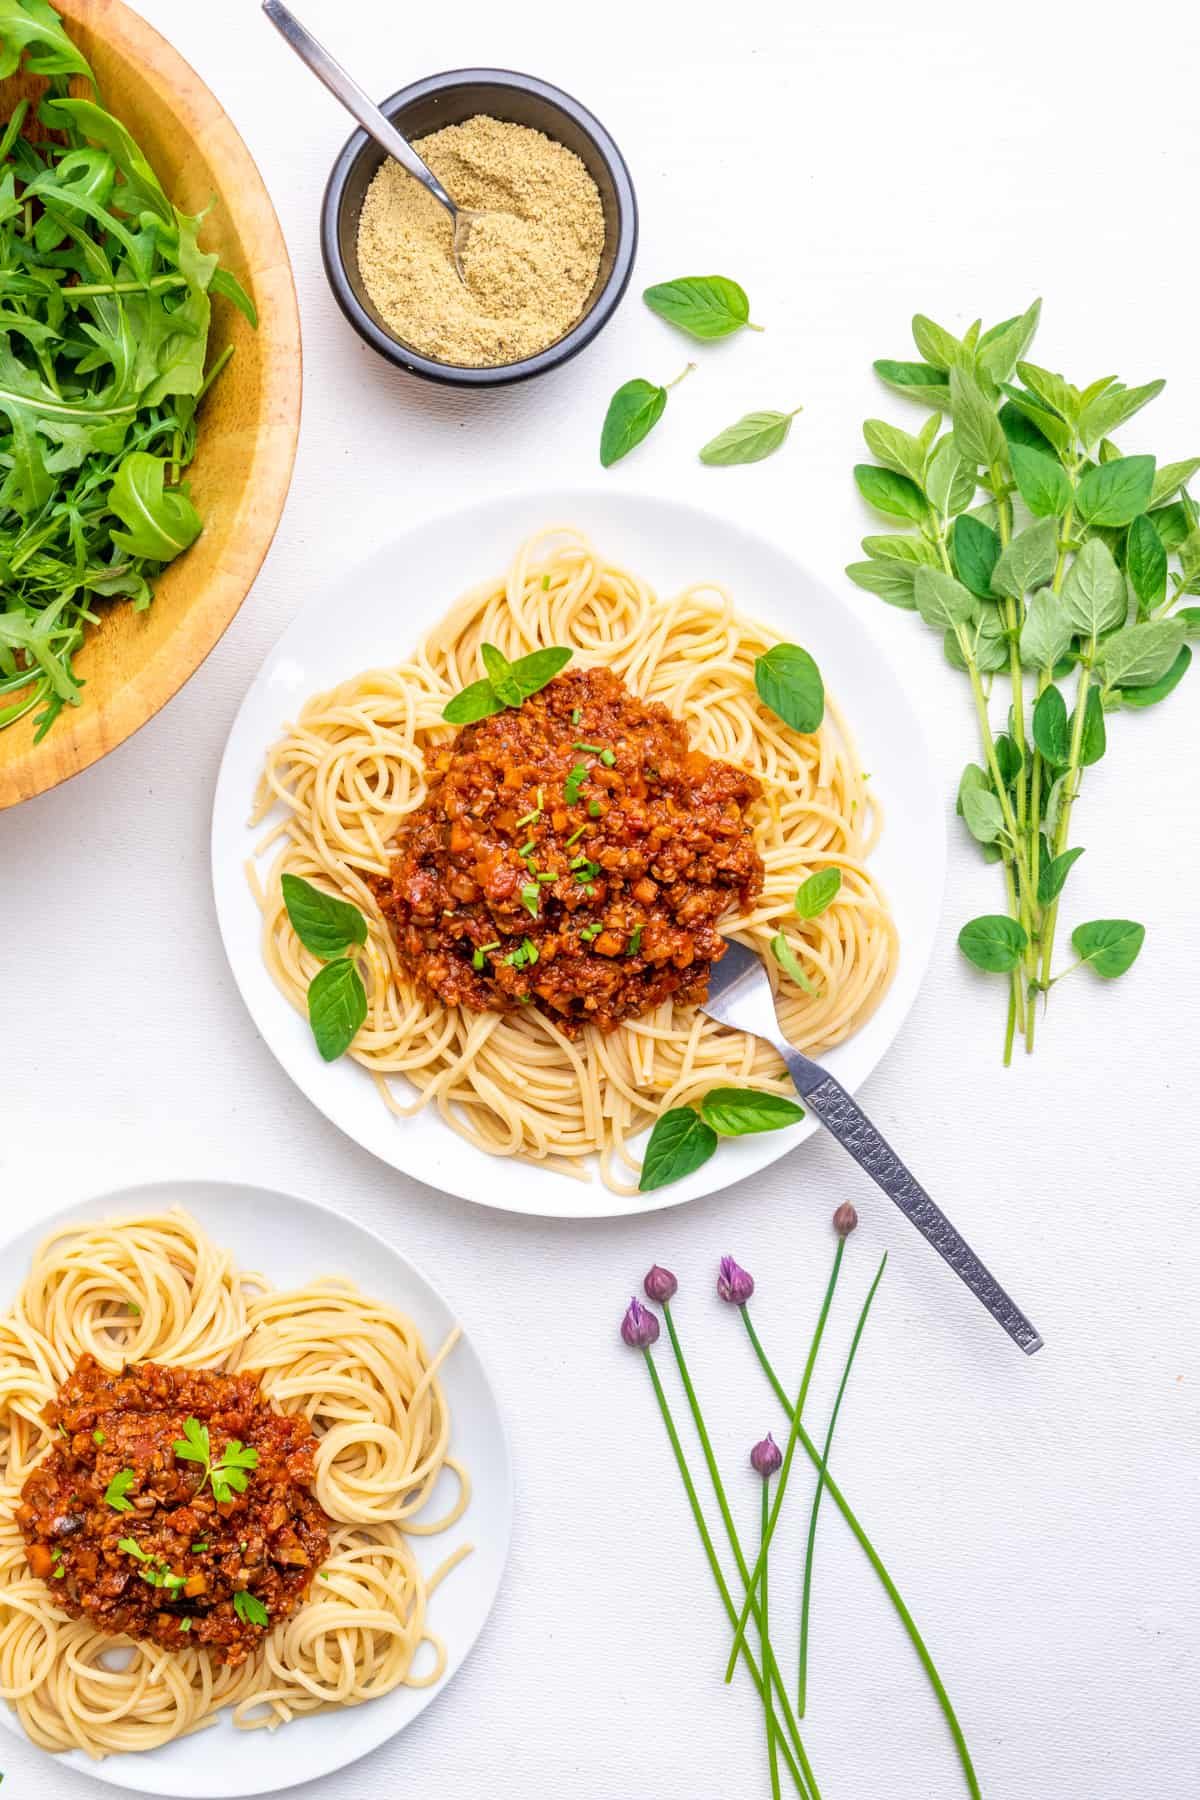 Top down view of a dining table. Two plates of spaghetti bolognese, a bunch of fresh herbs and chives, a small pot of vegan parmesan and a bowl of rocket.